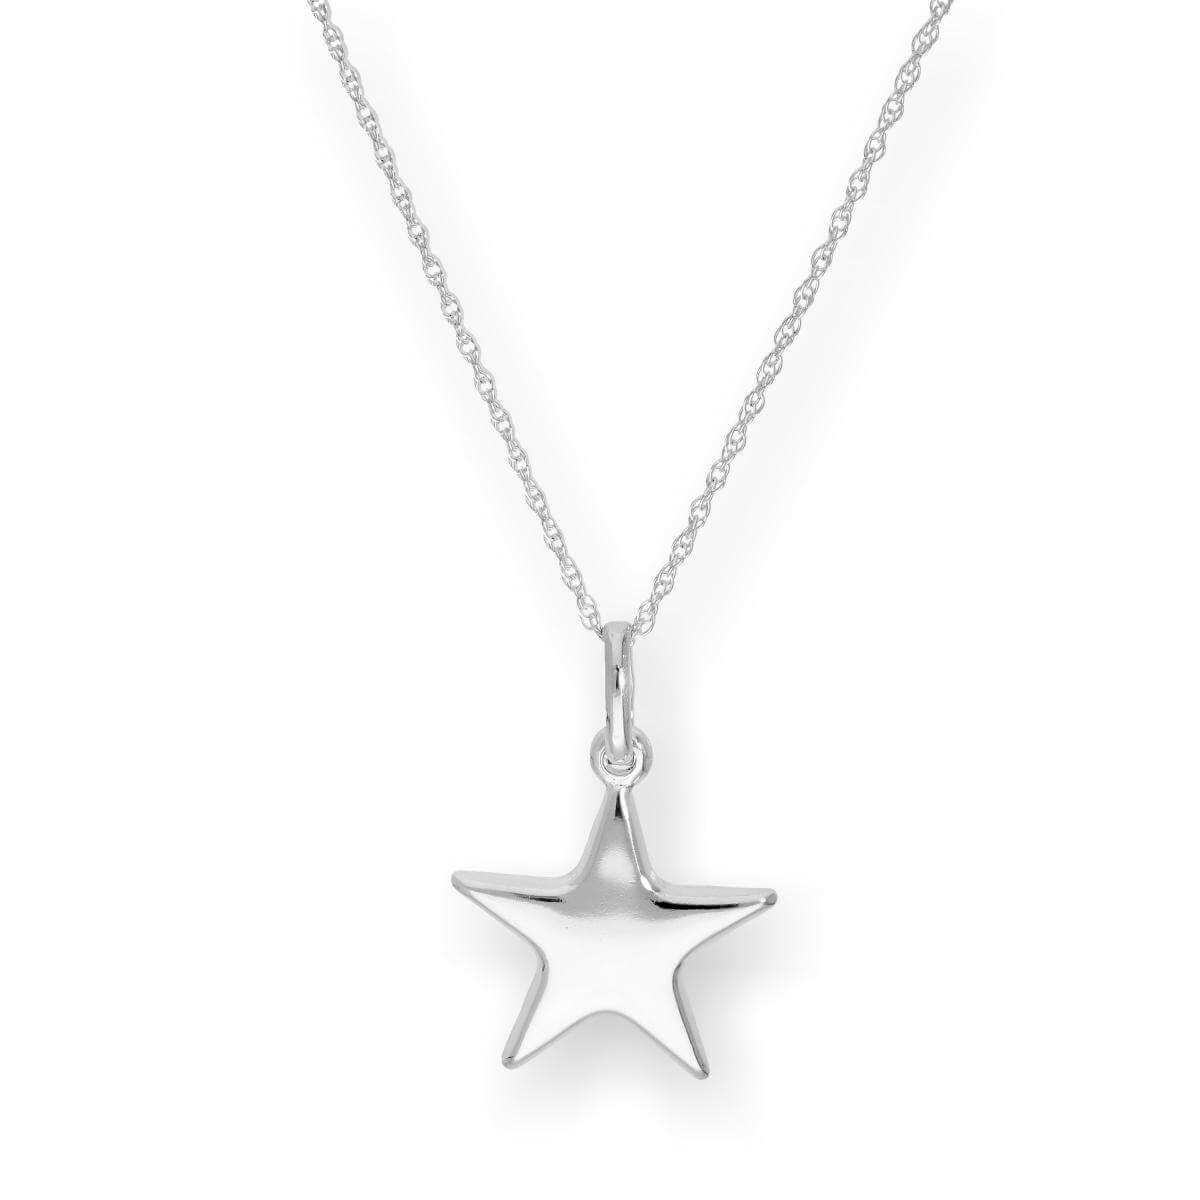 Sterling silver star pendant on chain 16 22 inches jewellerybox sterling silver star pendant on chain 16 22 inches mozeypictures Image collections